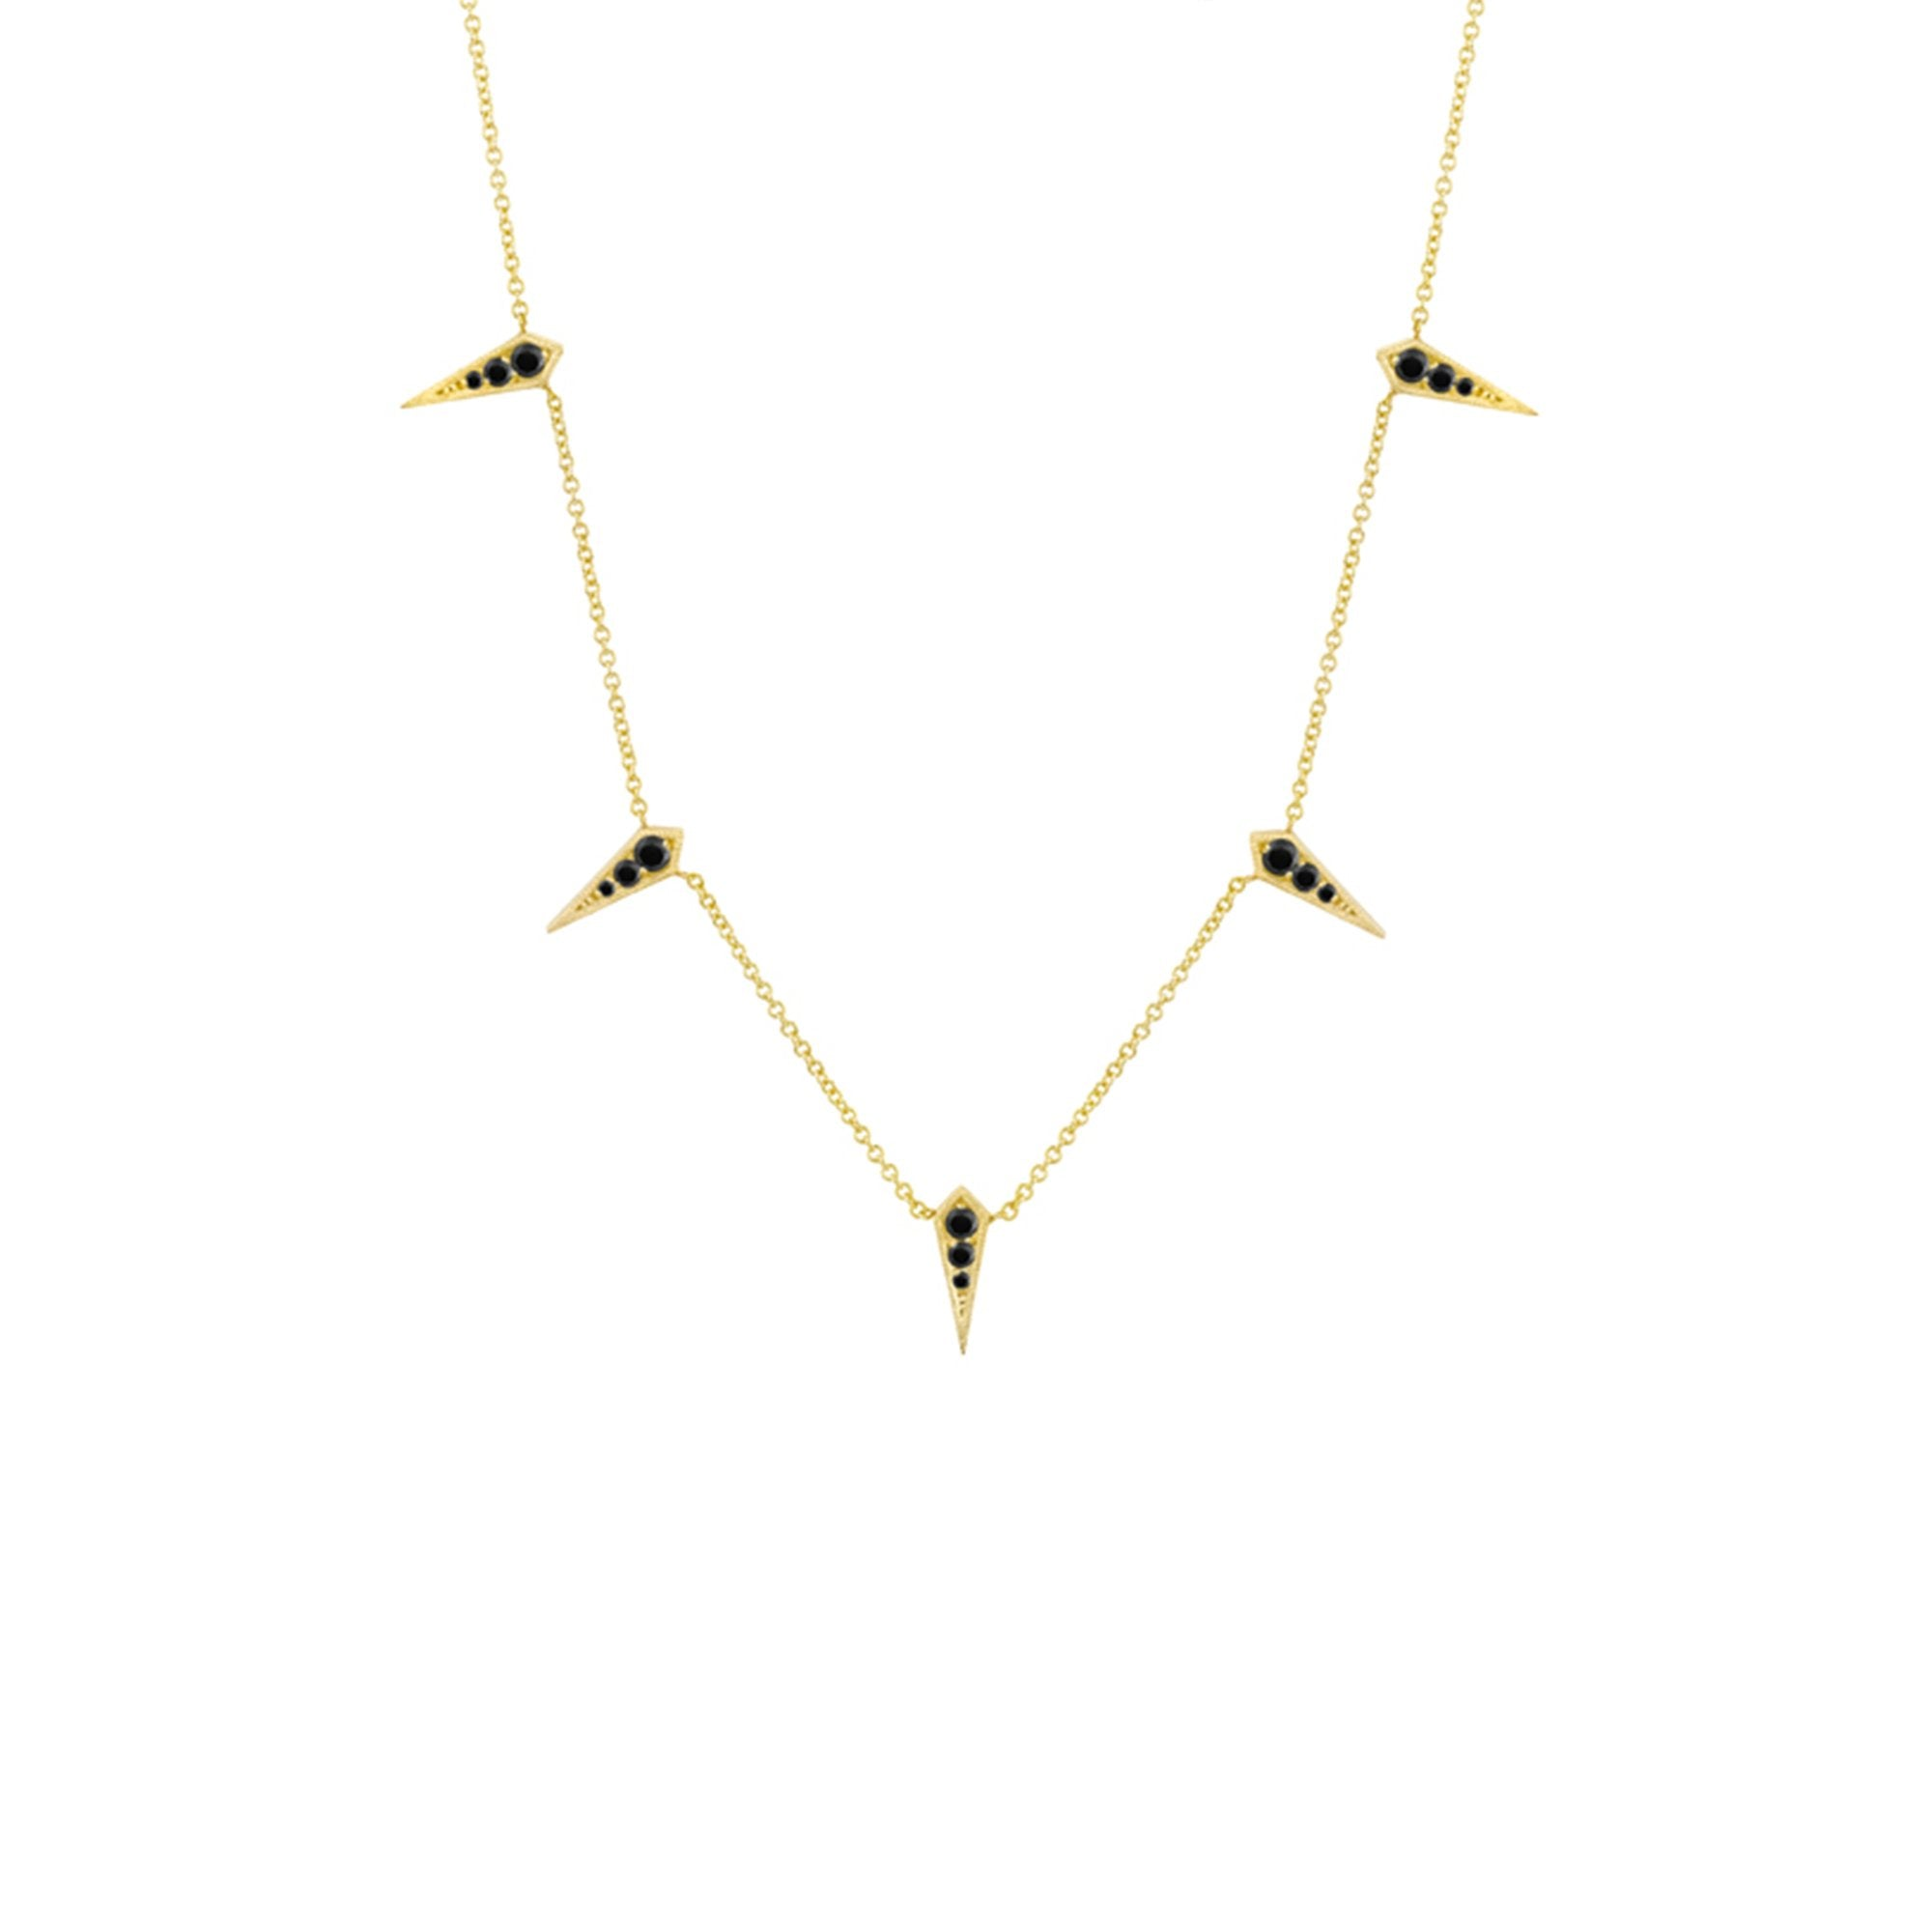 Lizzie Mandler Five Kite Necklace - Black Diamond & Gold - Necklaces - Broken English Jewelry